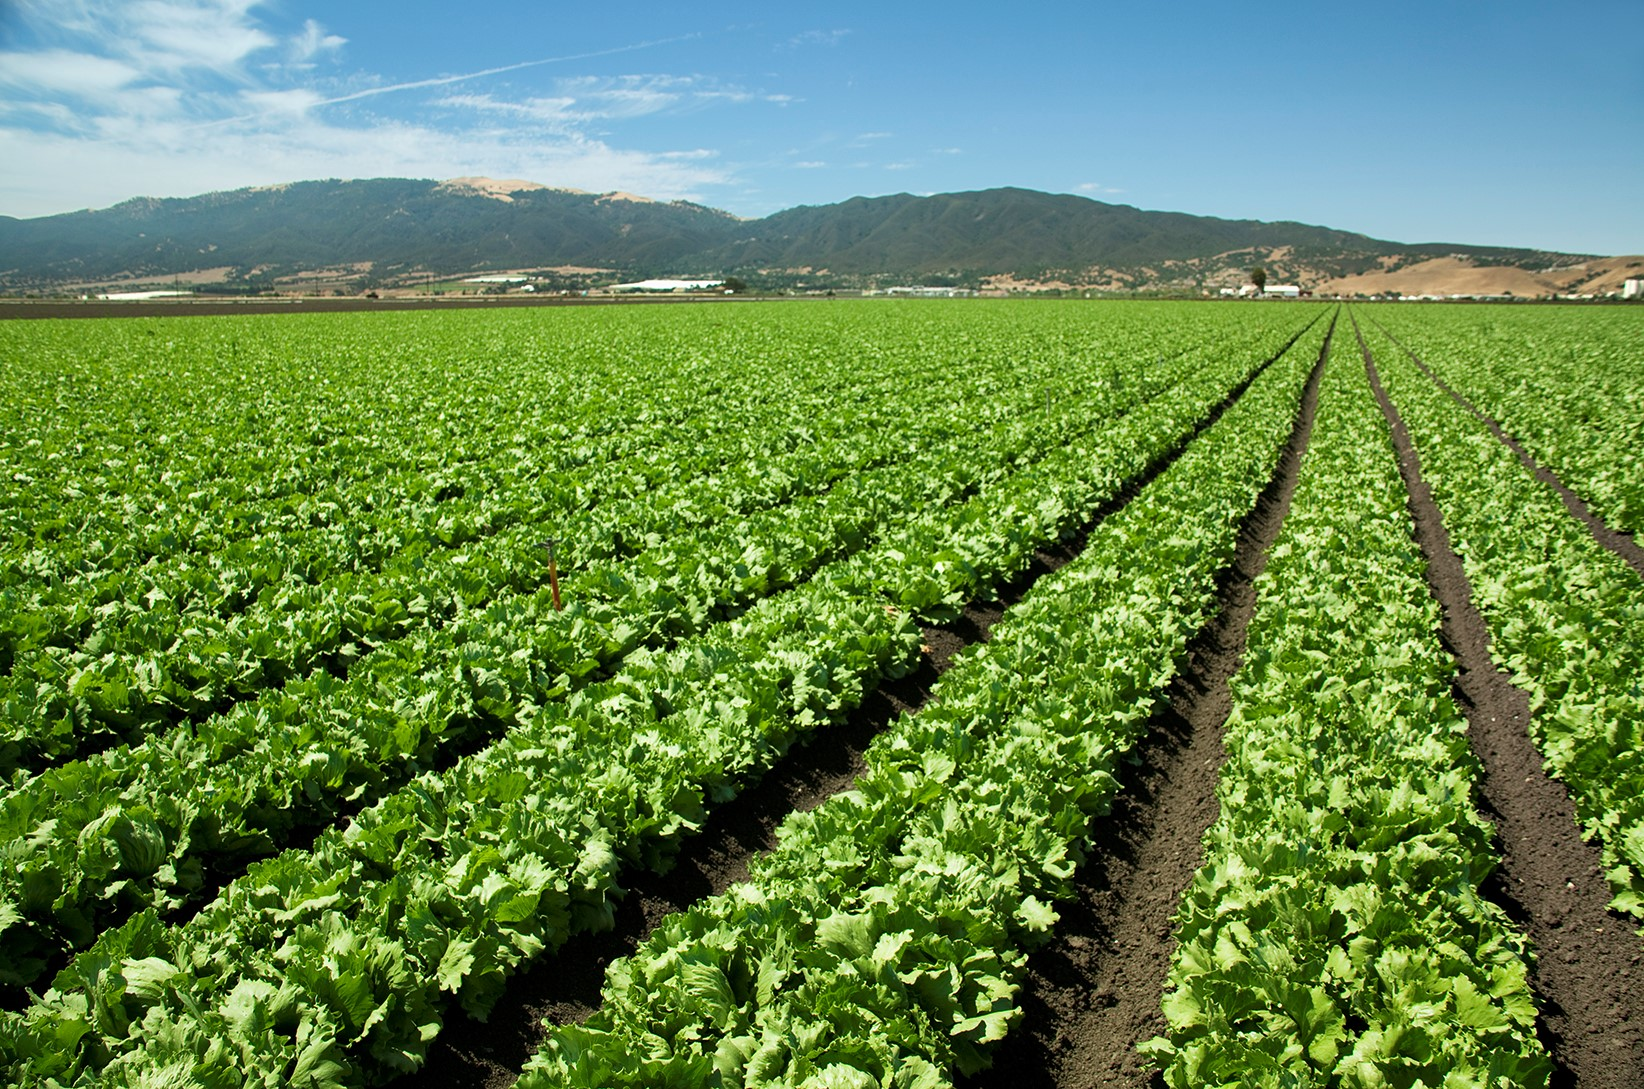 this agronomic image shows a field of lettuce.